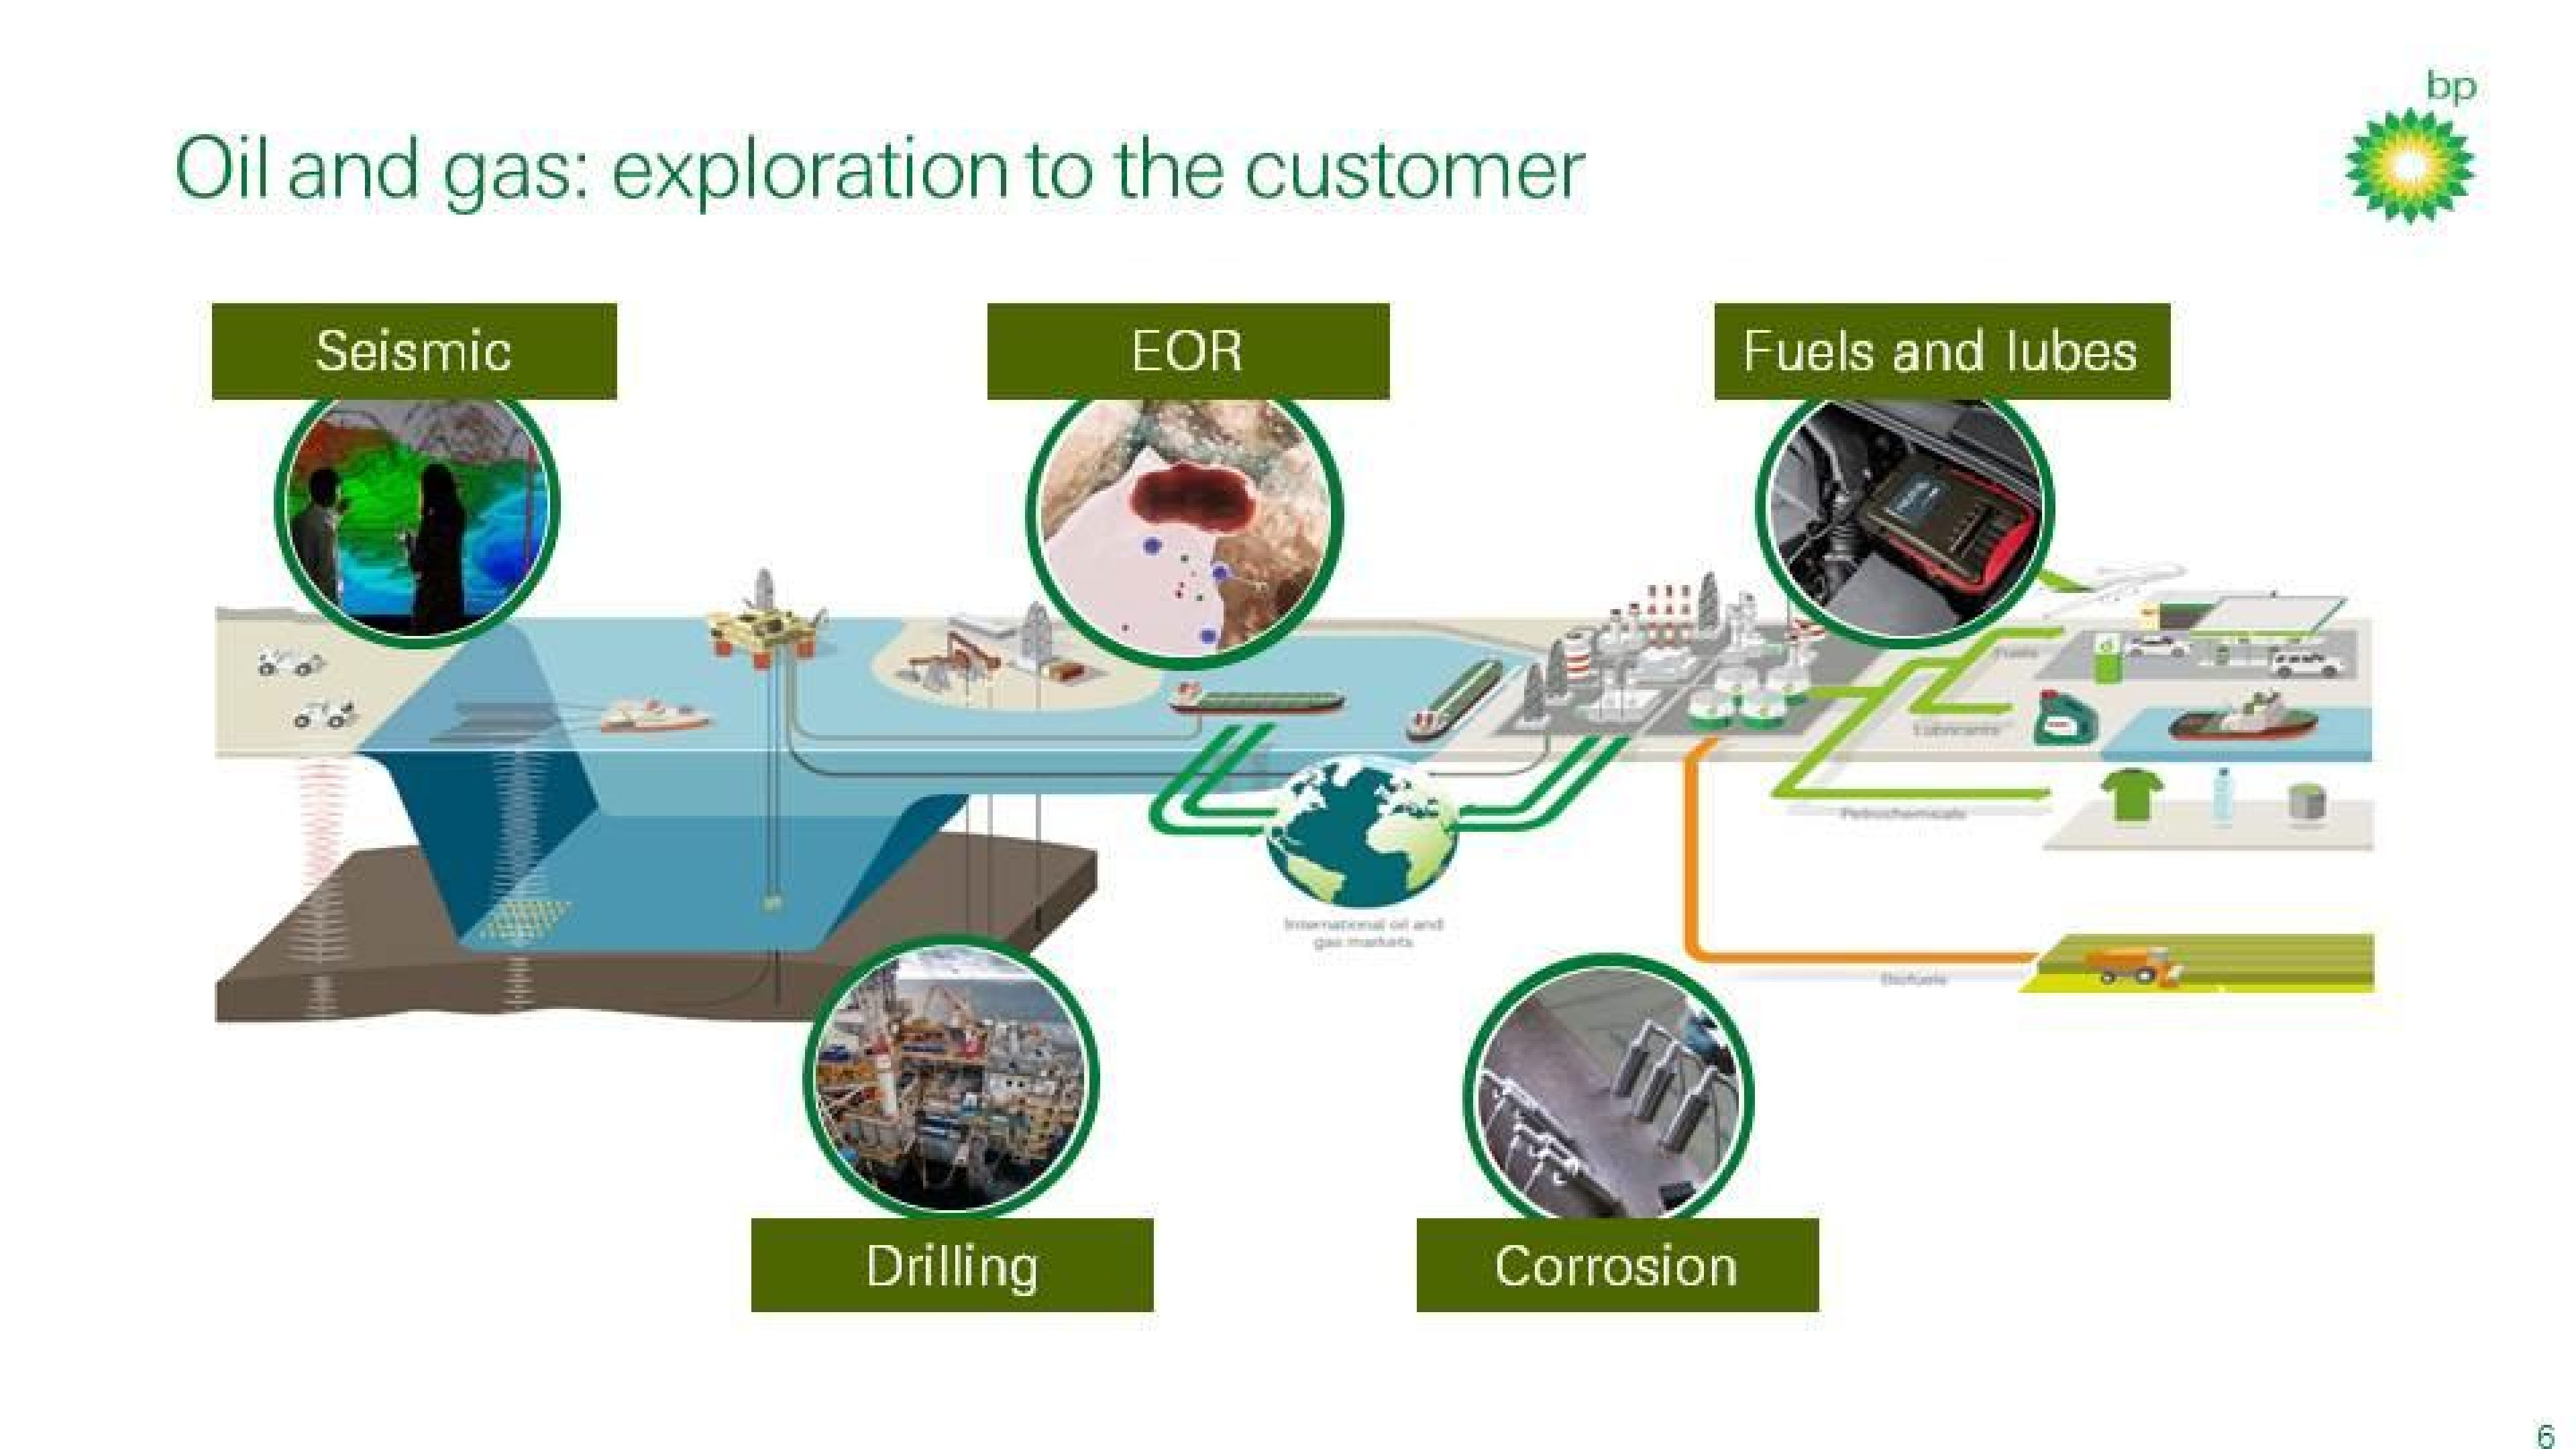 Oil and gas: exploration to the customer